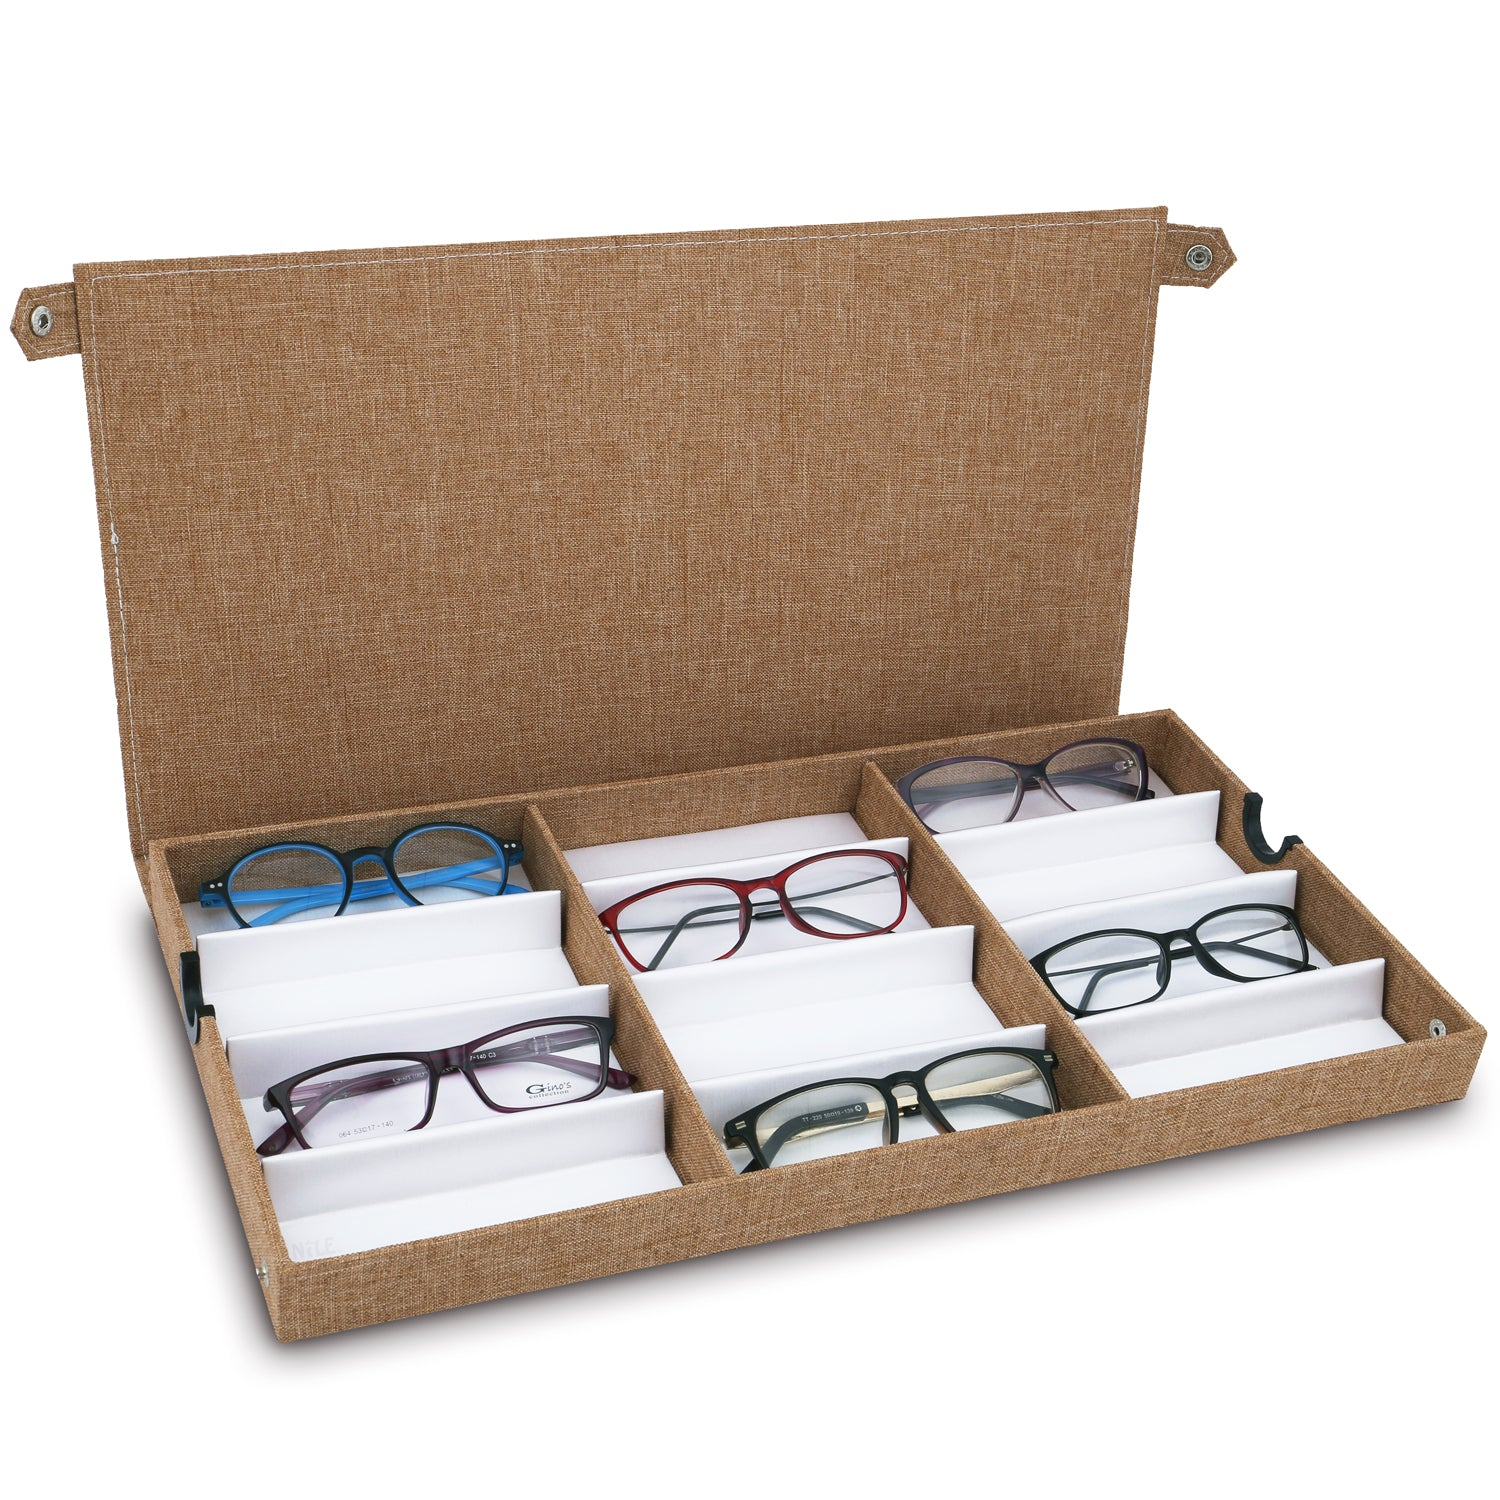 #TR-34BFS-LNBR Eyewears Organizer Box - 12 Slots Small or Medium Eyeglasses Display